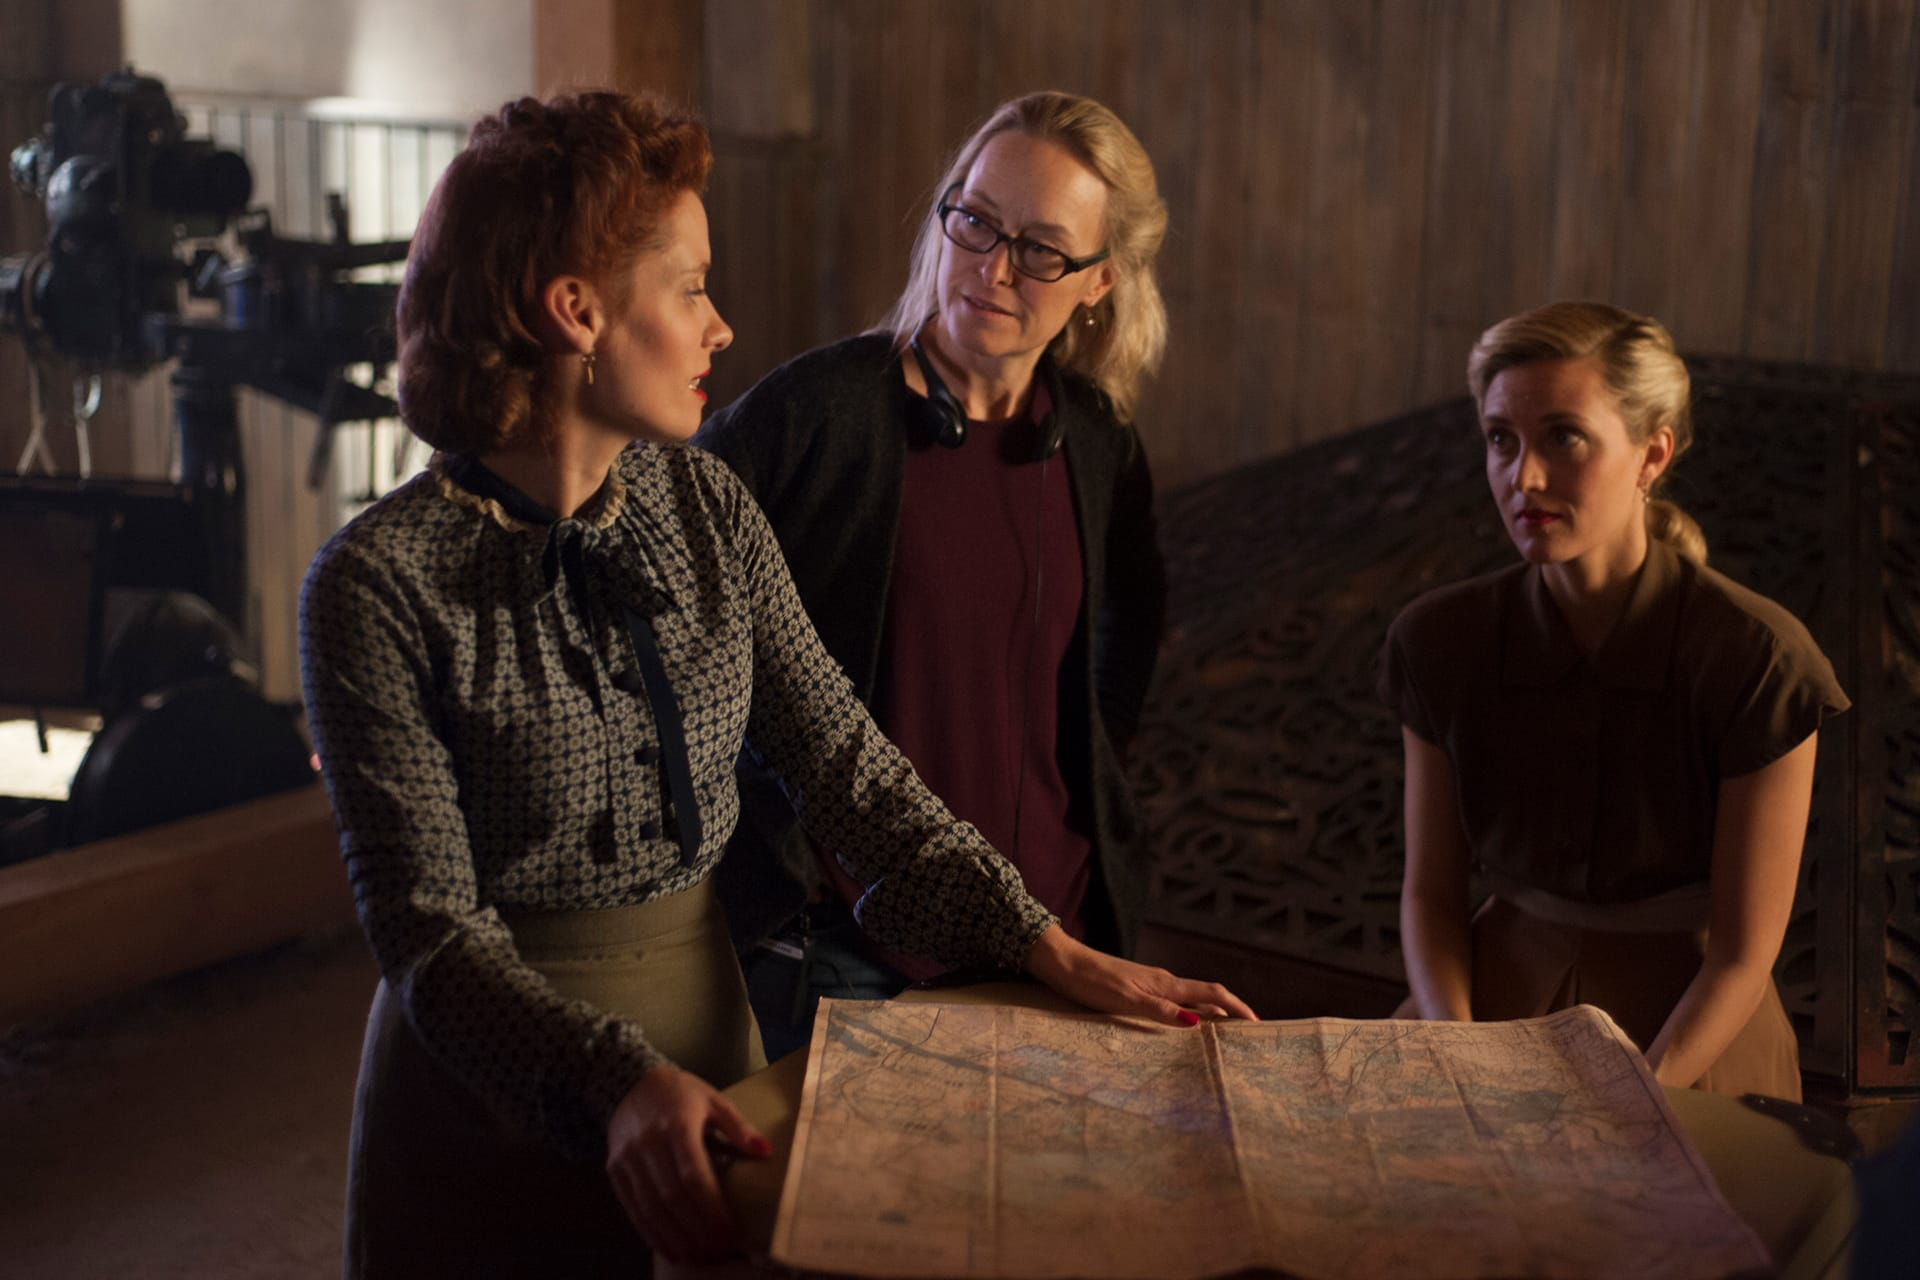 Behind the scenes on the set of X Company Season 3 with Lara Jean Chorostecki (Krystina), Director Stephanie Morgenstern and Evelyne Brochu (Aurora).